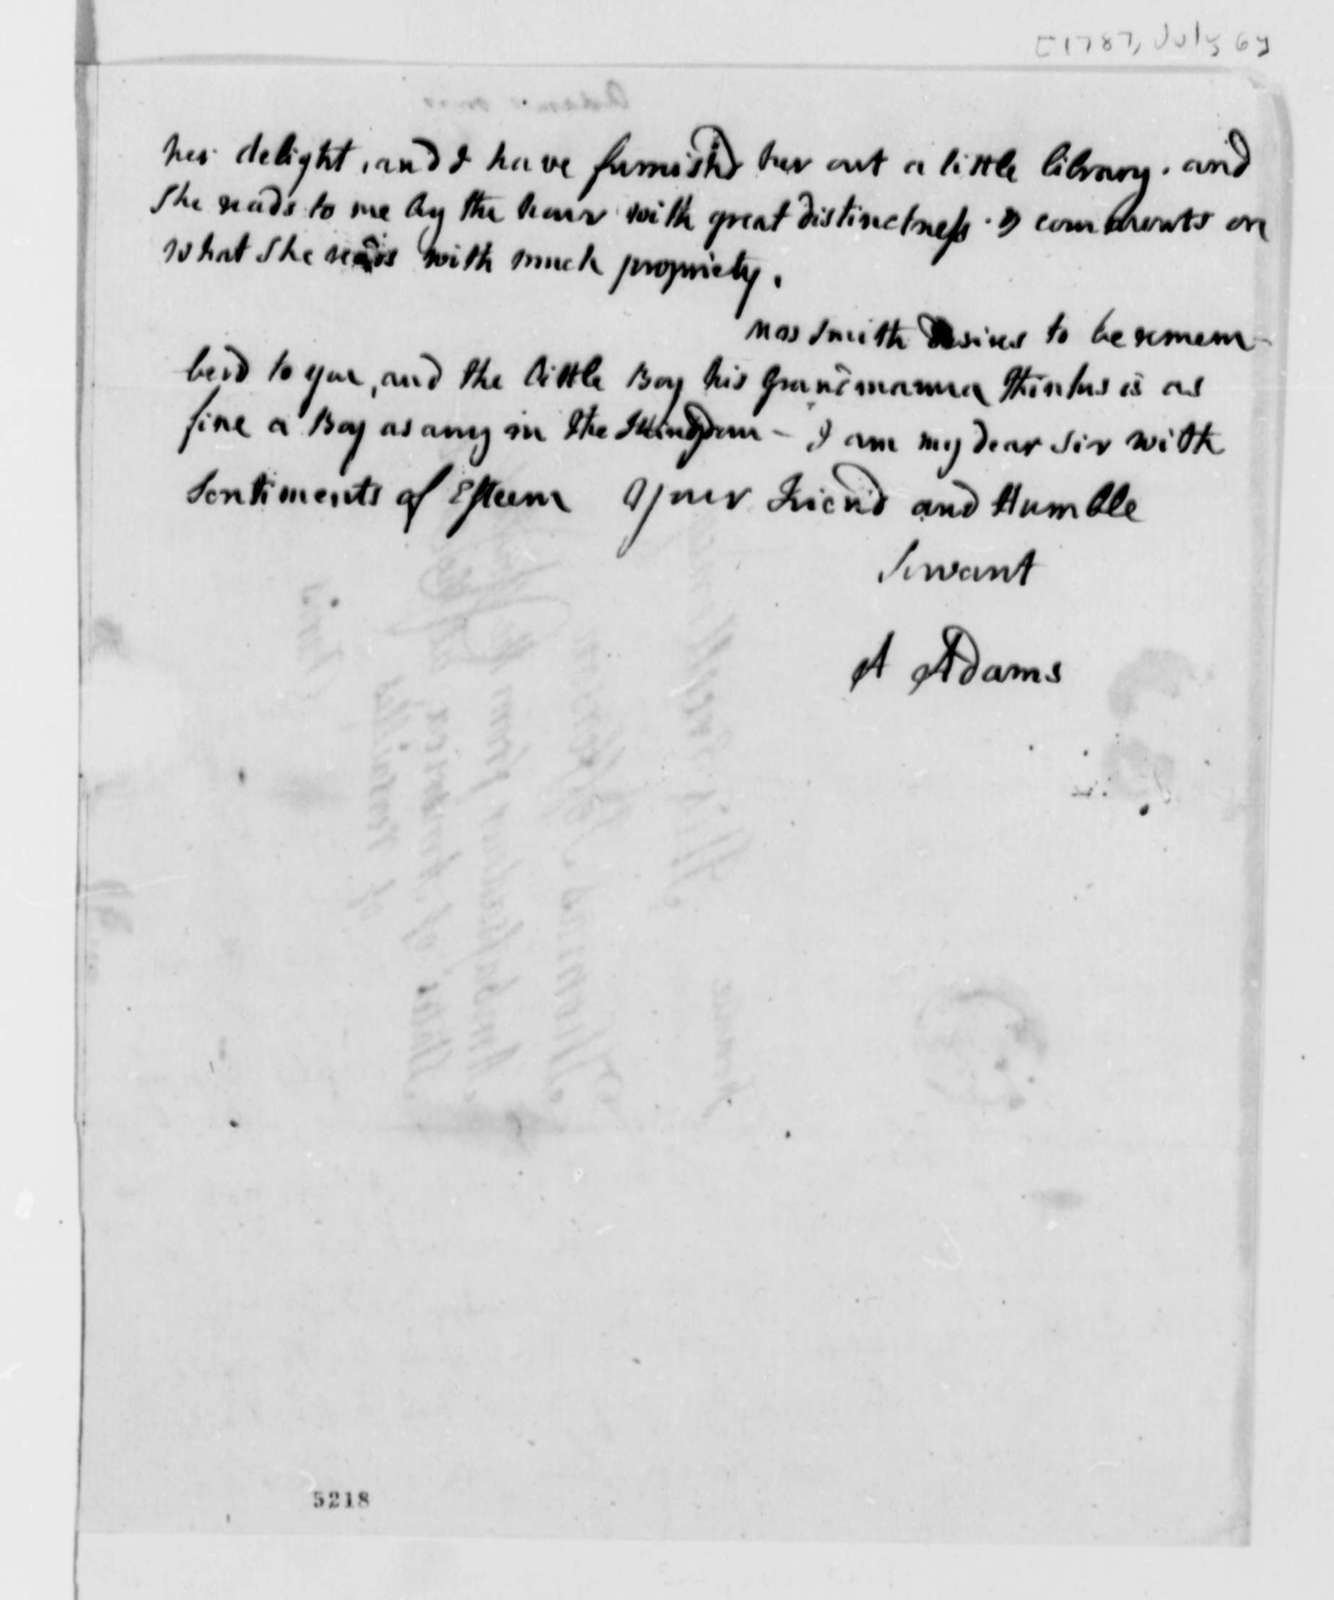 Abigail Smith Adams to Thomas Jefferson, July 6, 1787